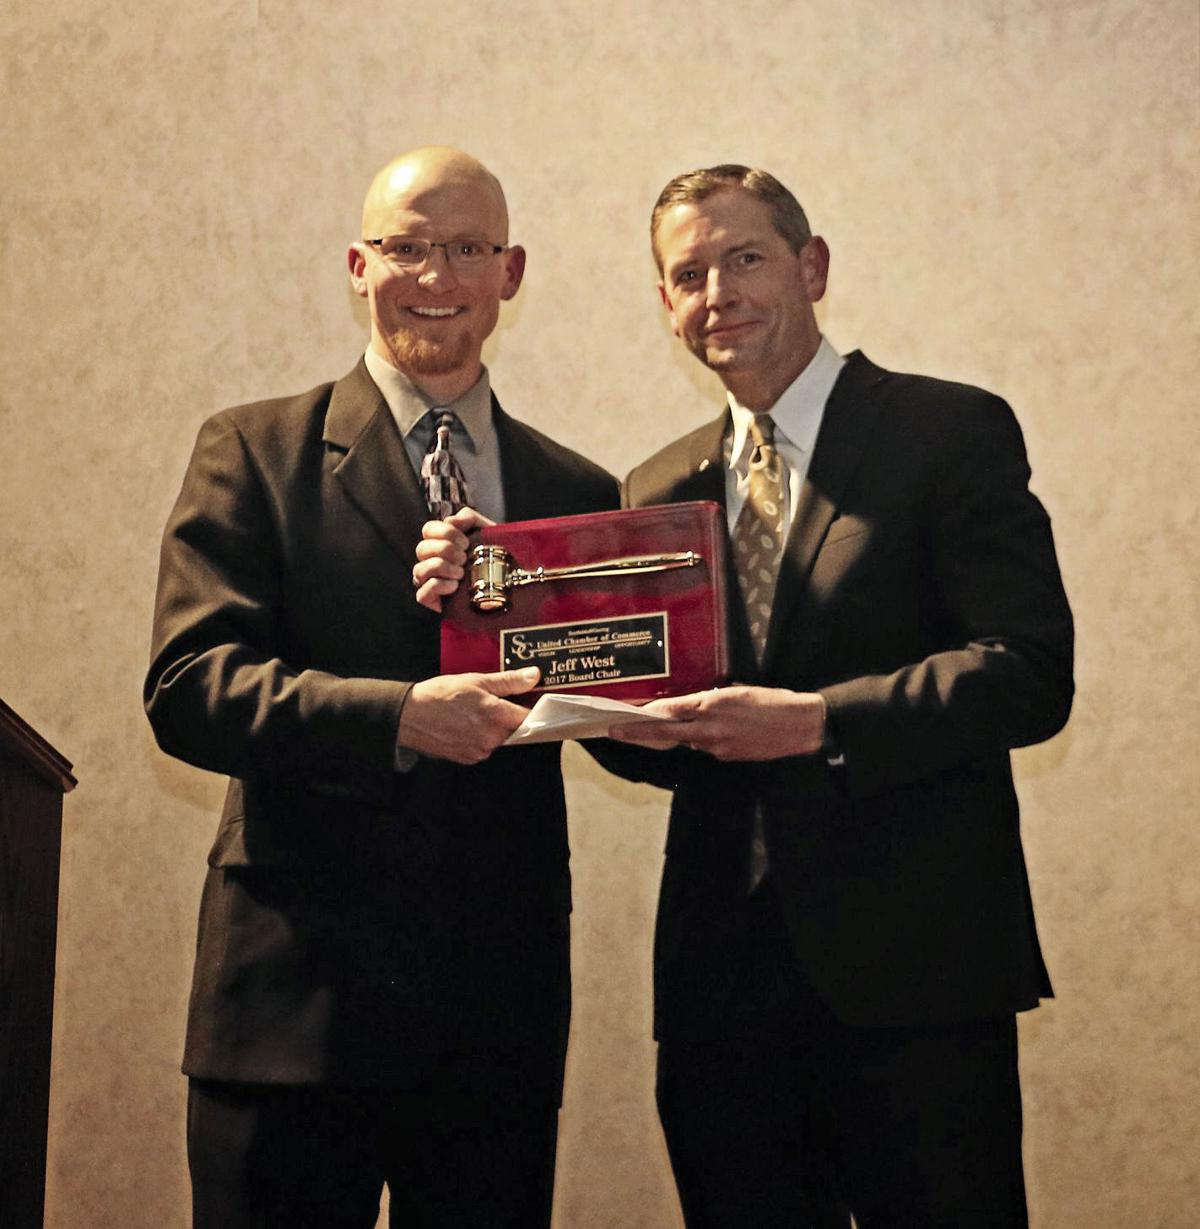 Leaders lauded at annual chamber of commerce banquet local news leaders lauded at annual chamber of commerce banquet malvernweather Gallery